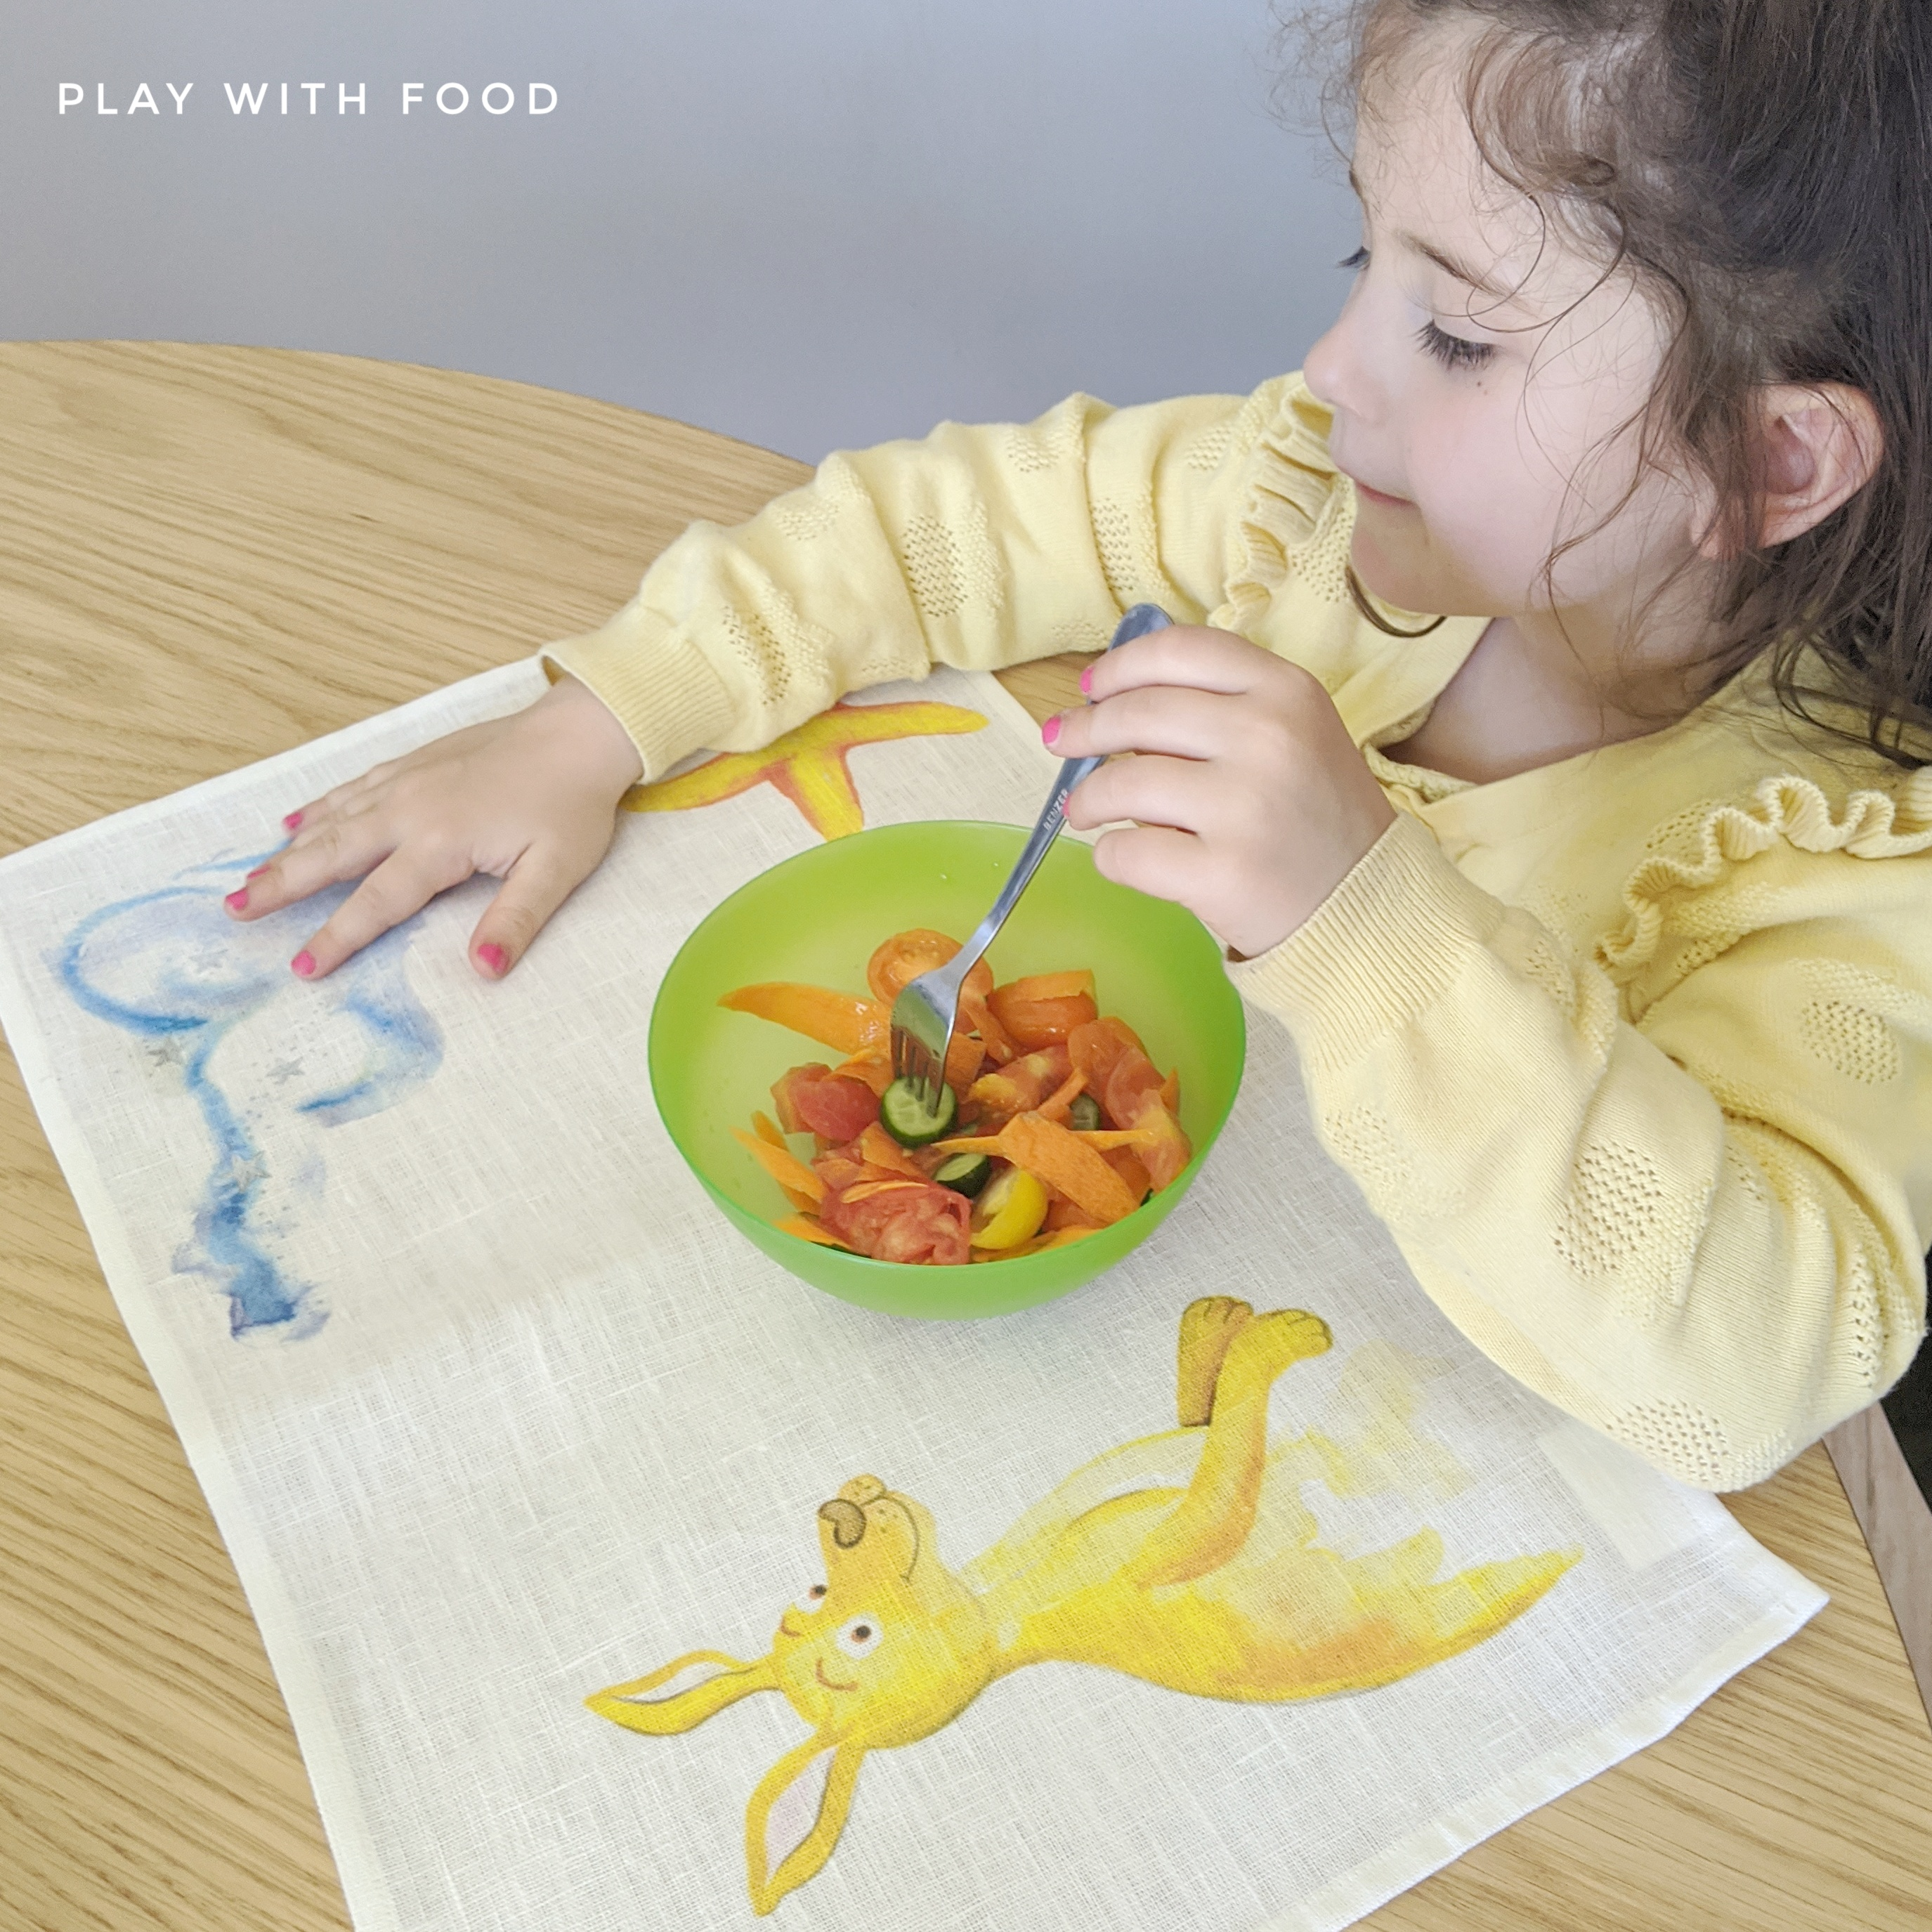 Mealtime Placemat and Videos by Children's Nutritionist {Includes Shipping}